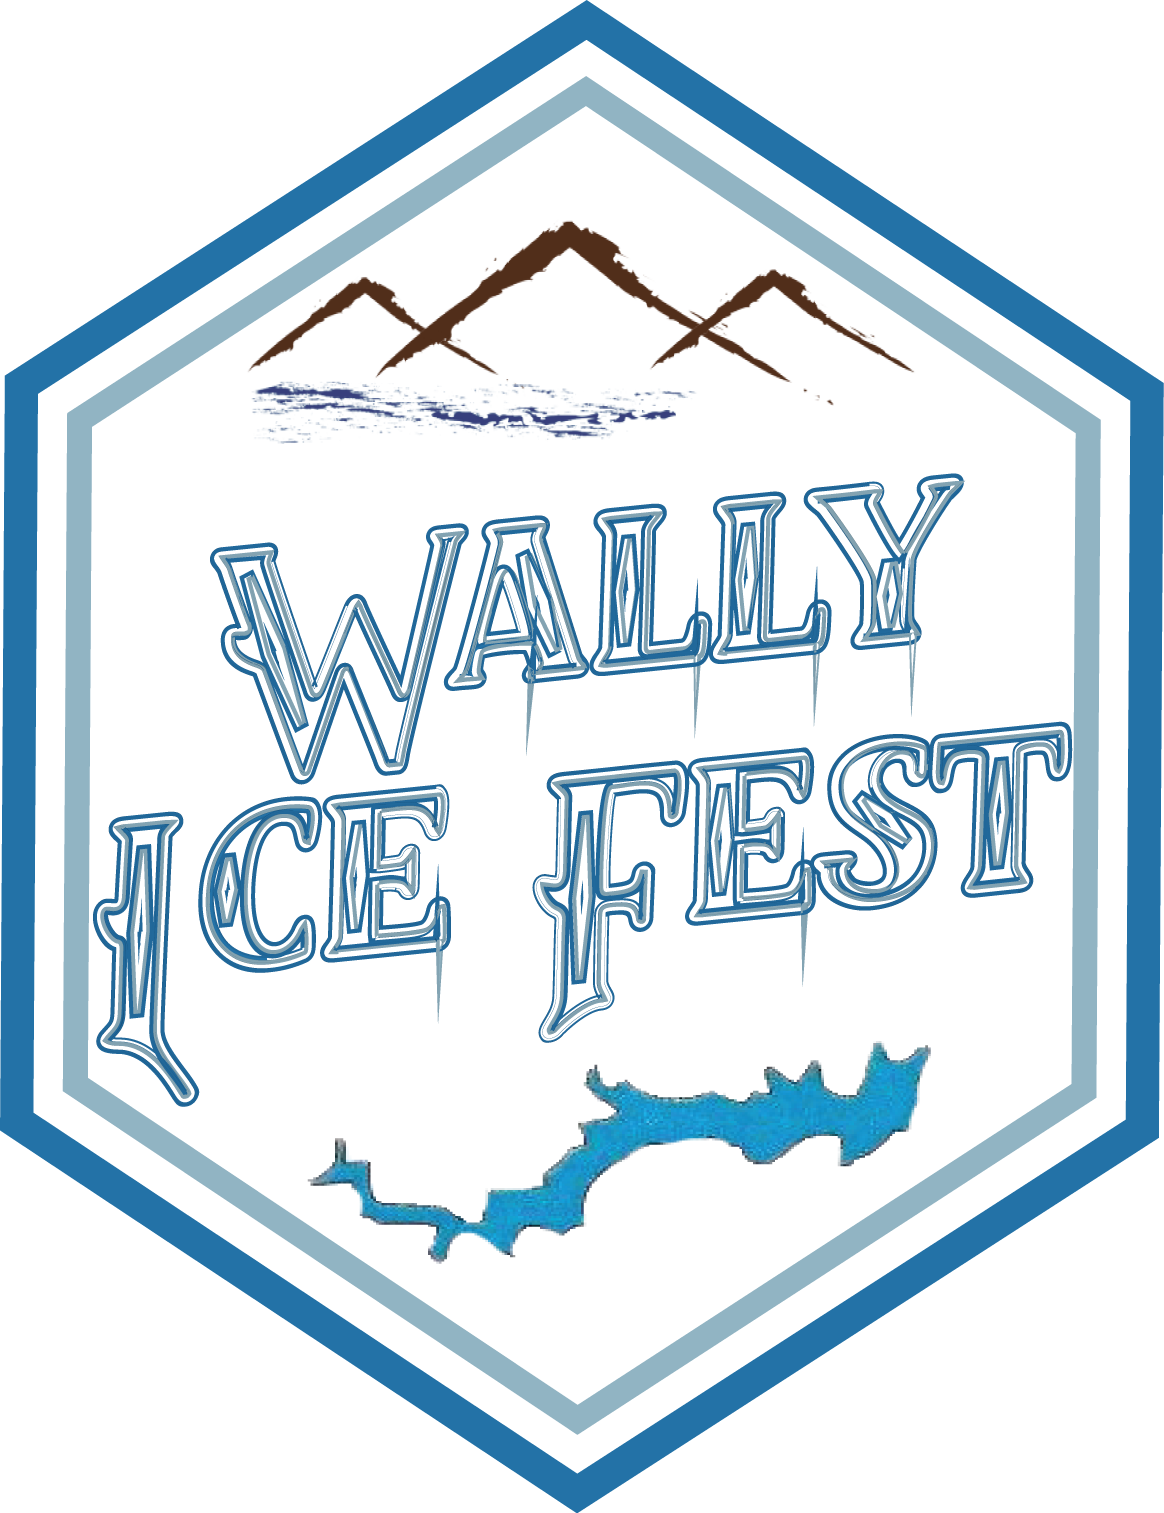 Winter clipart festival. Wally ice fest the